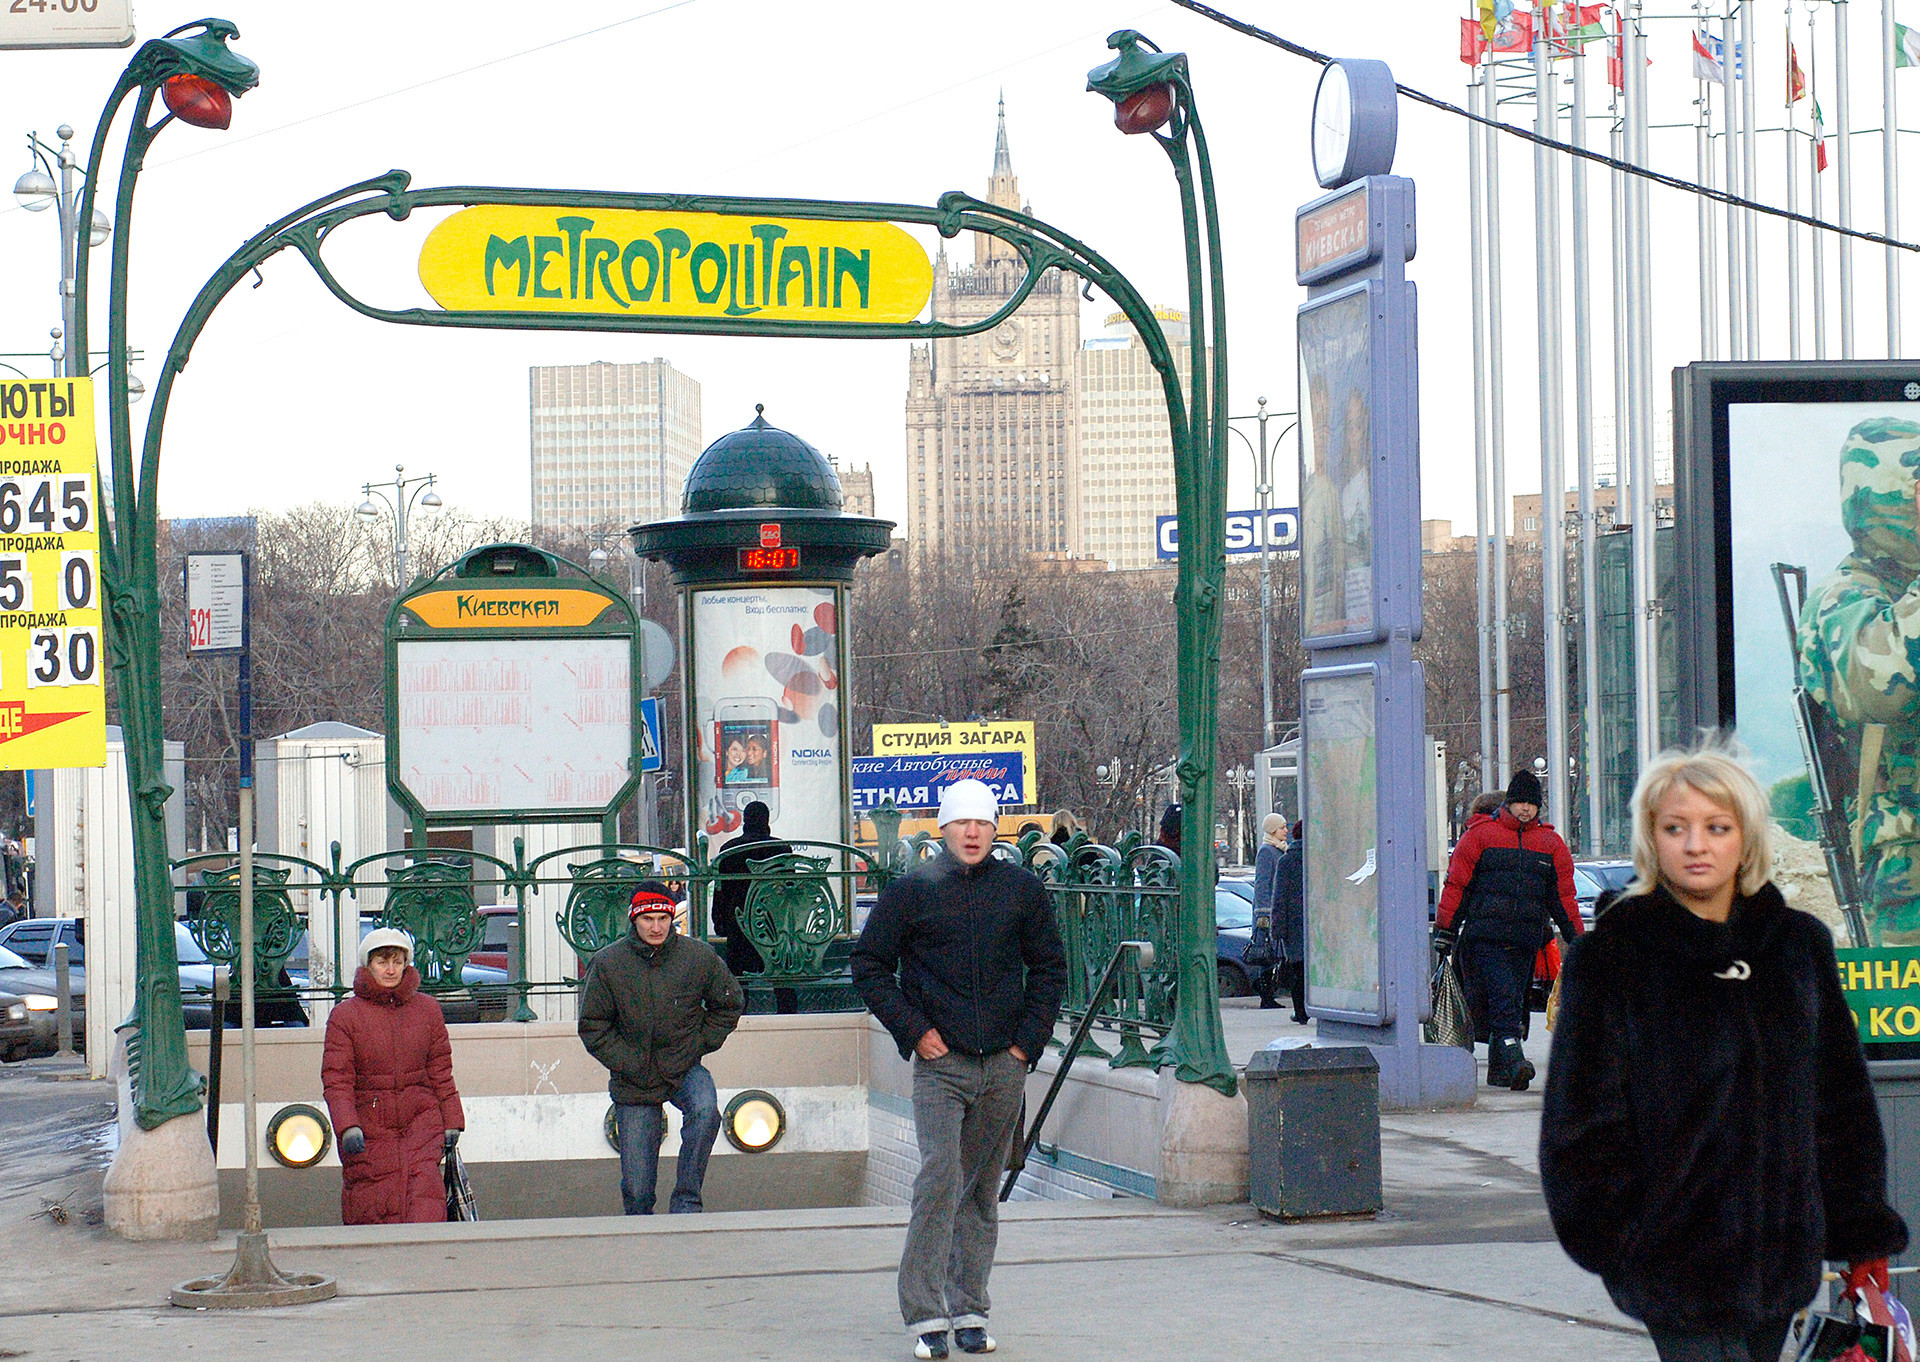 Entrance to Kievskaya underground station styled as Paris metro.